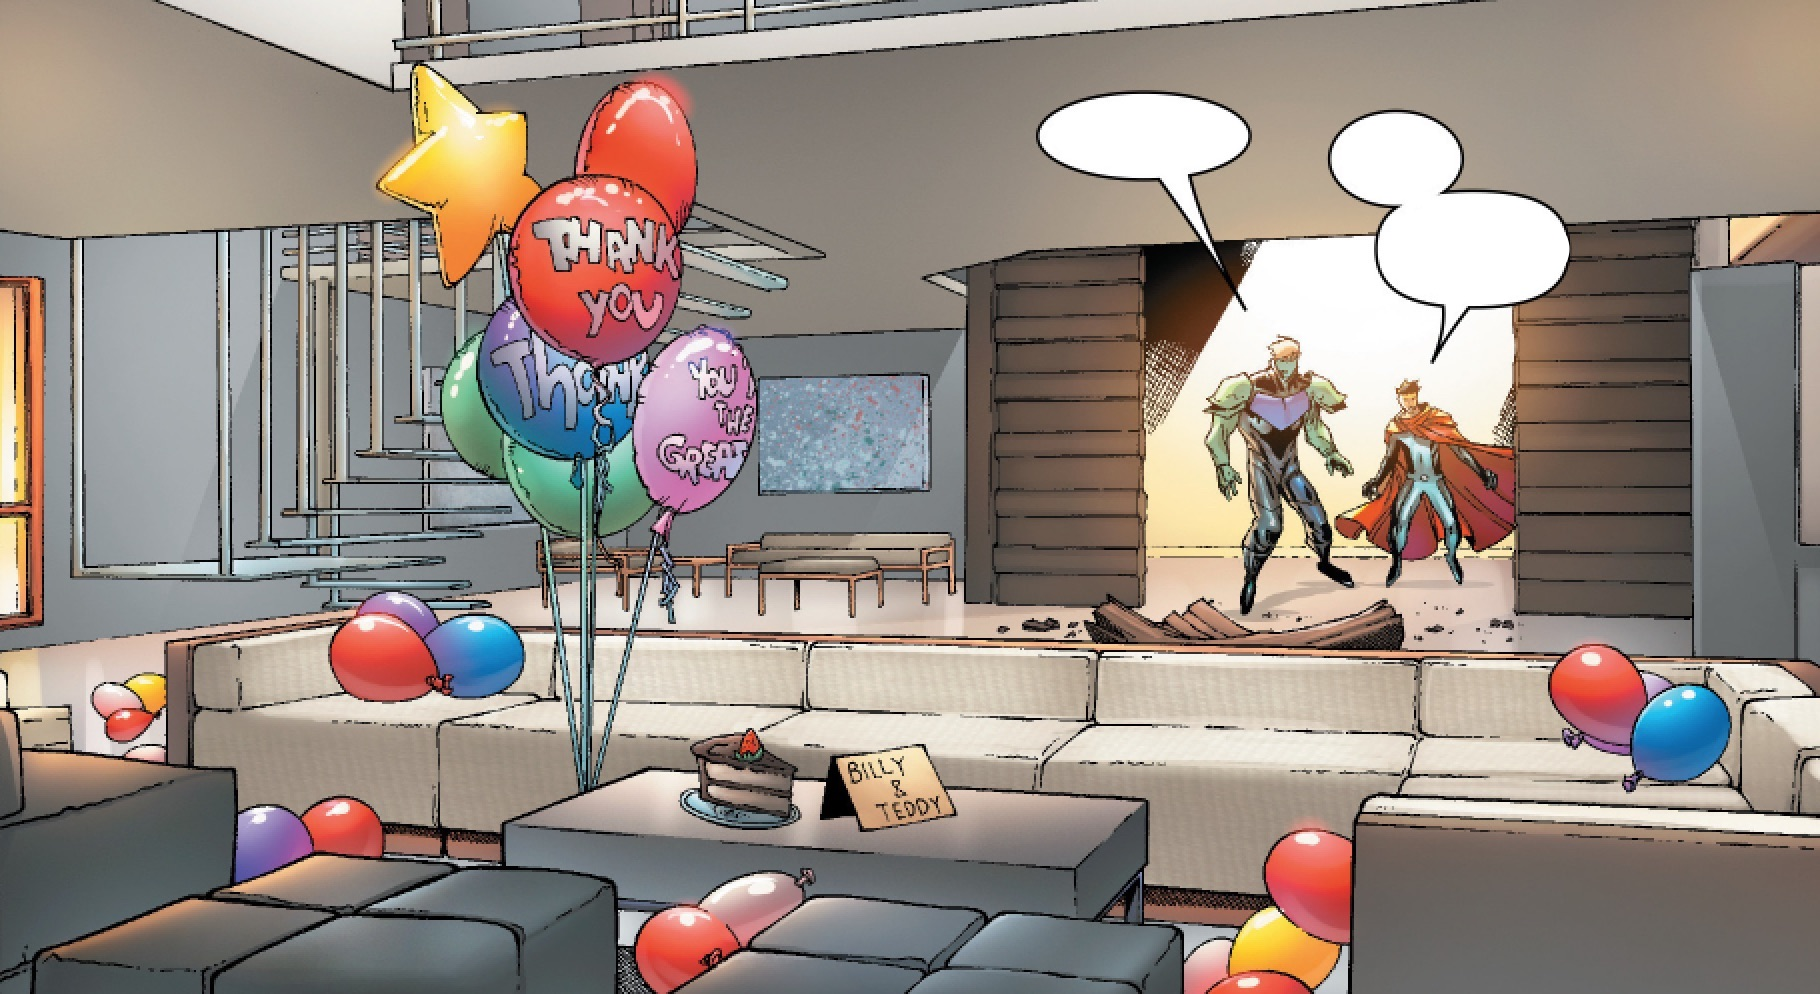 Wiccan and Hulkling's Apartment/Gallery